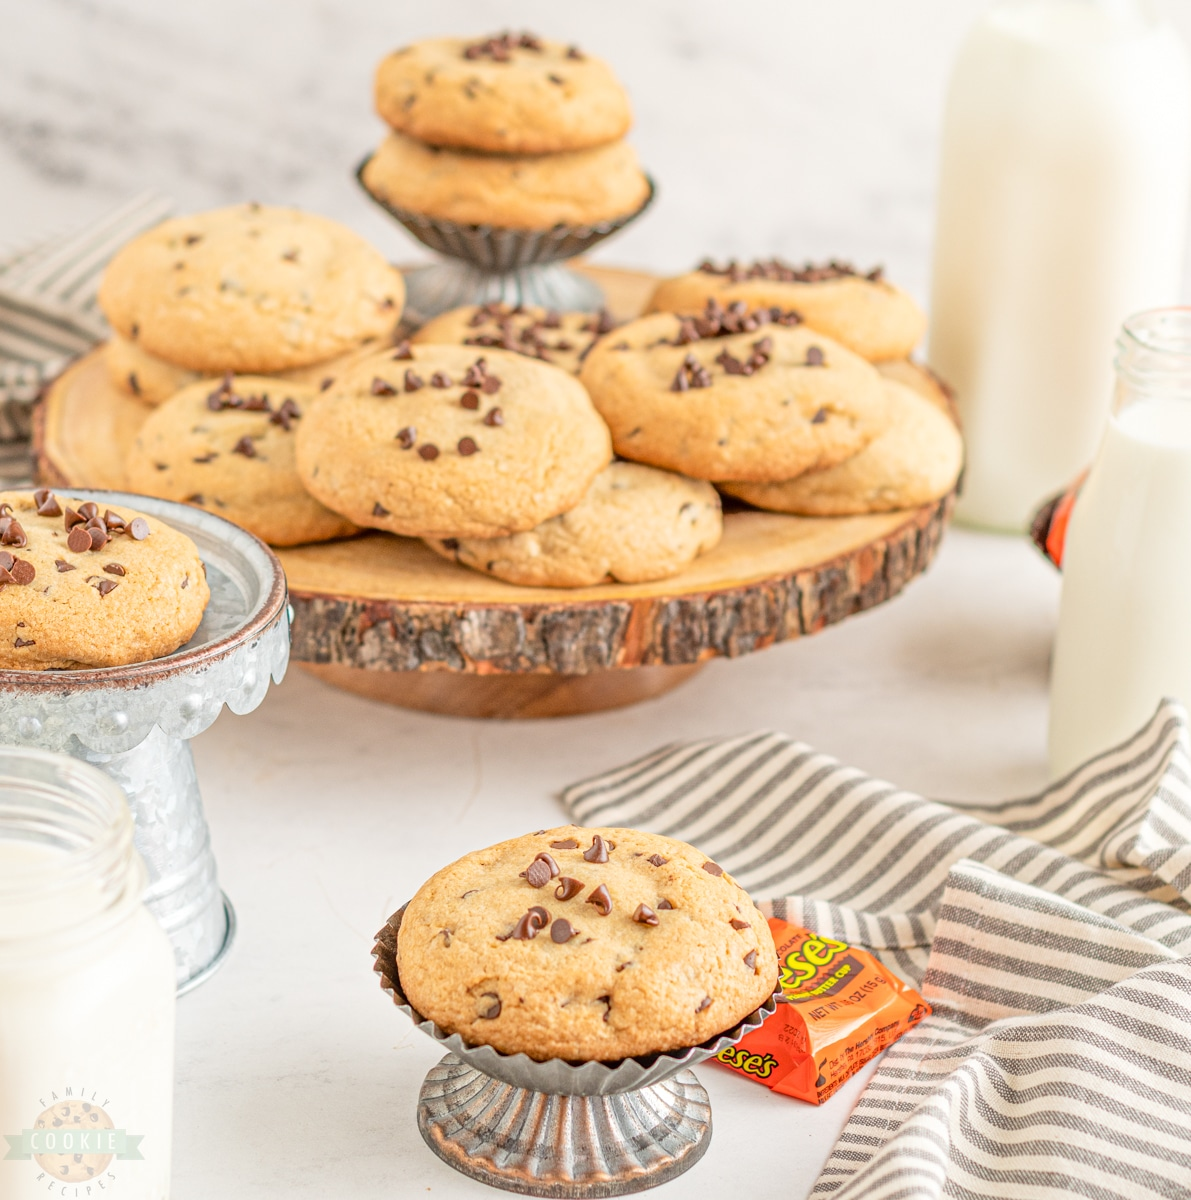 chocolate chip cookies on display trays with a glass of milk and reese's cups